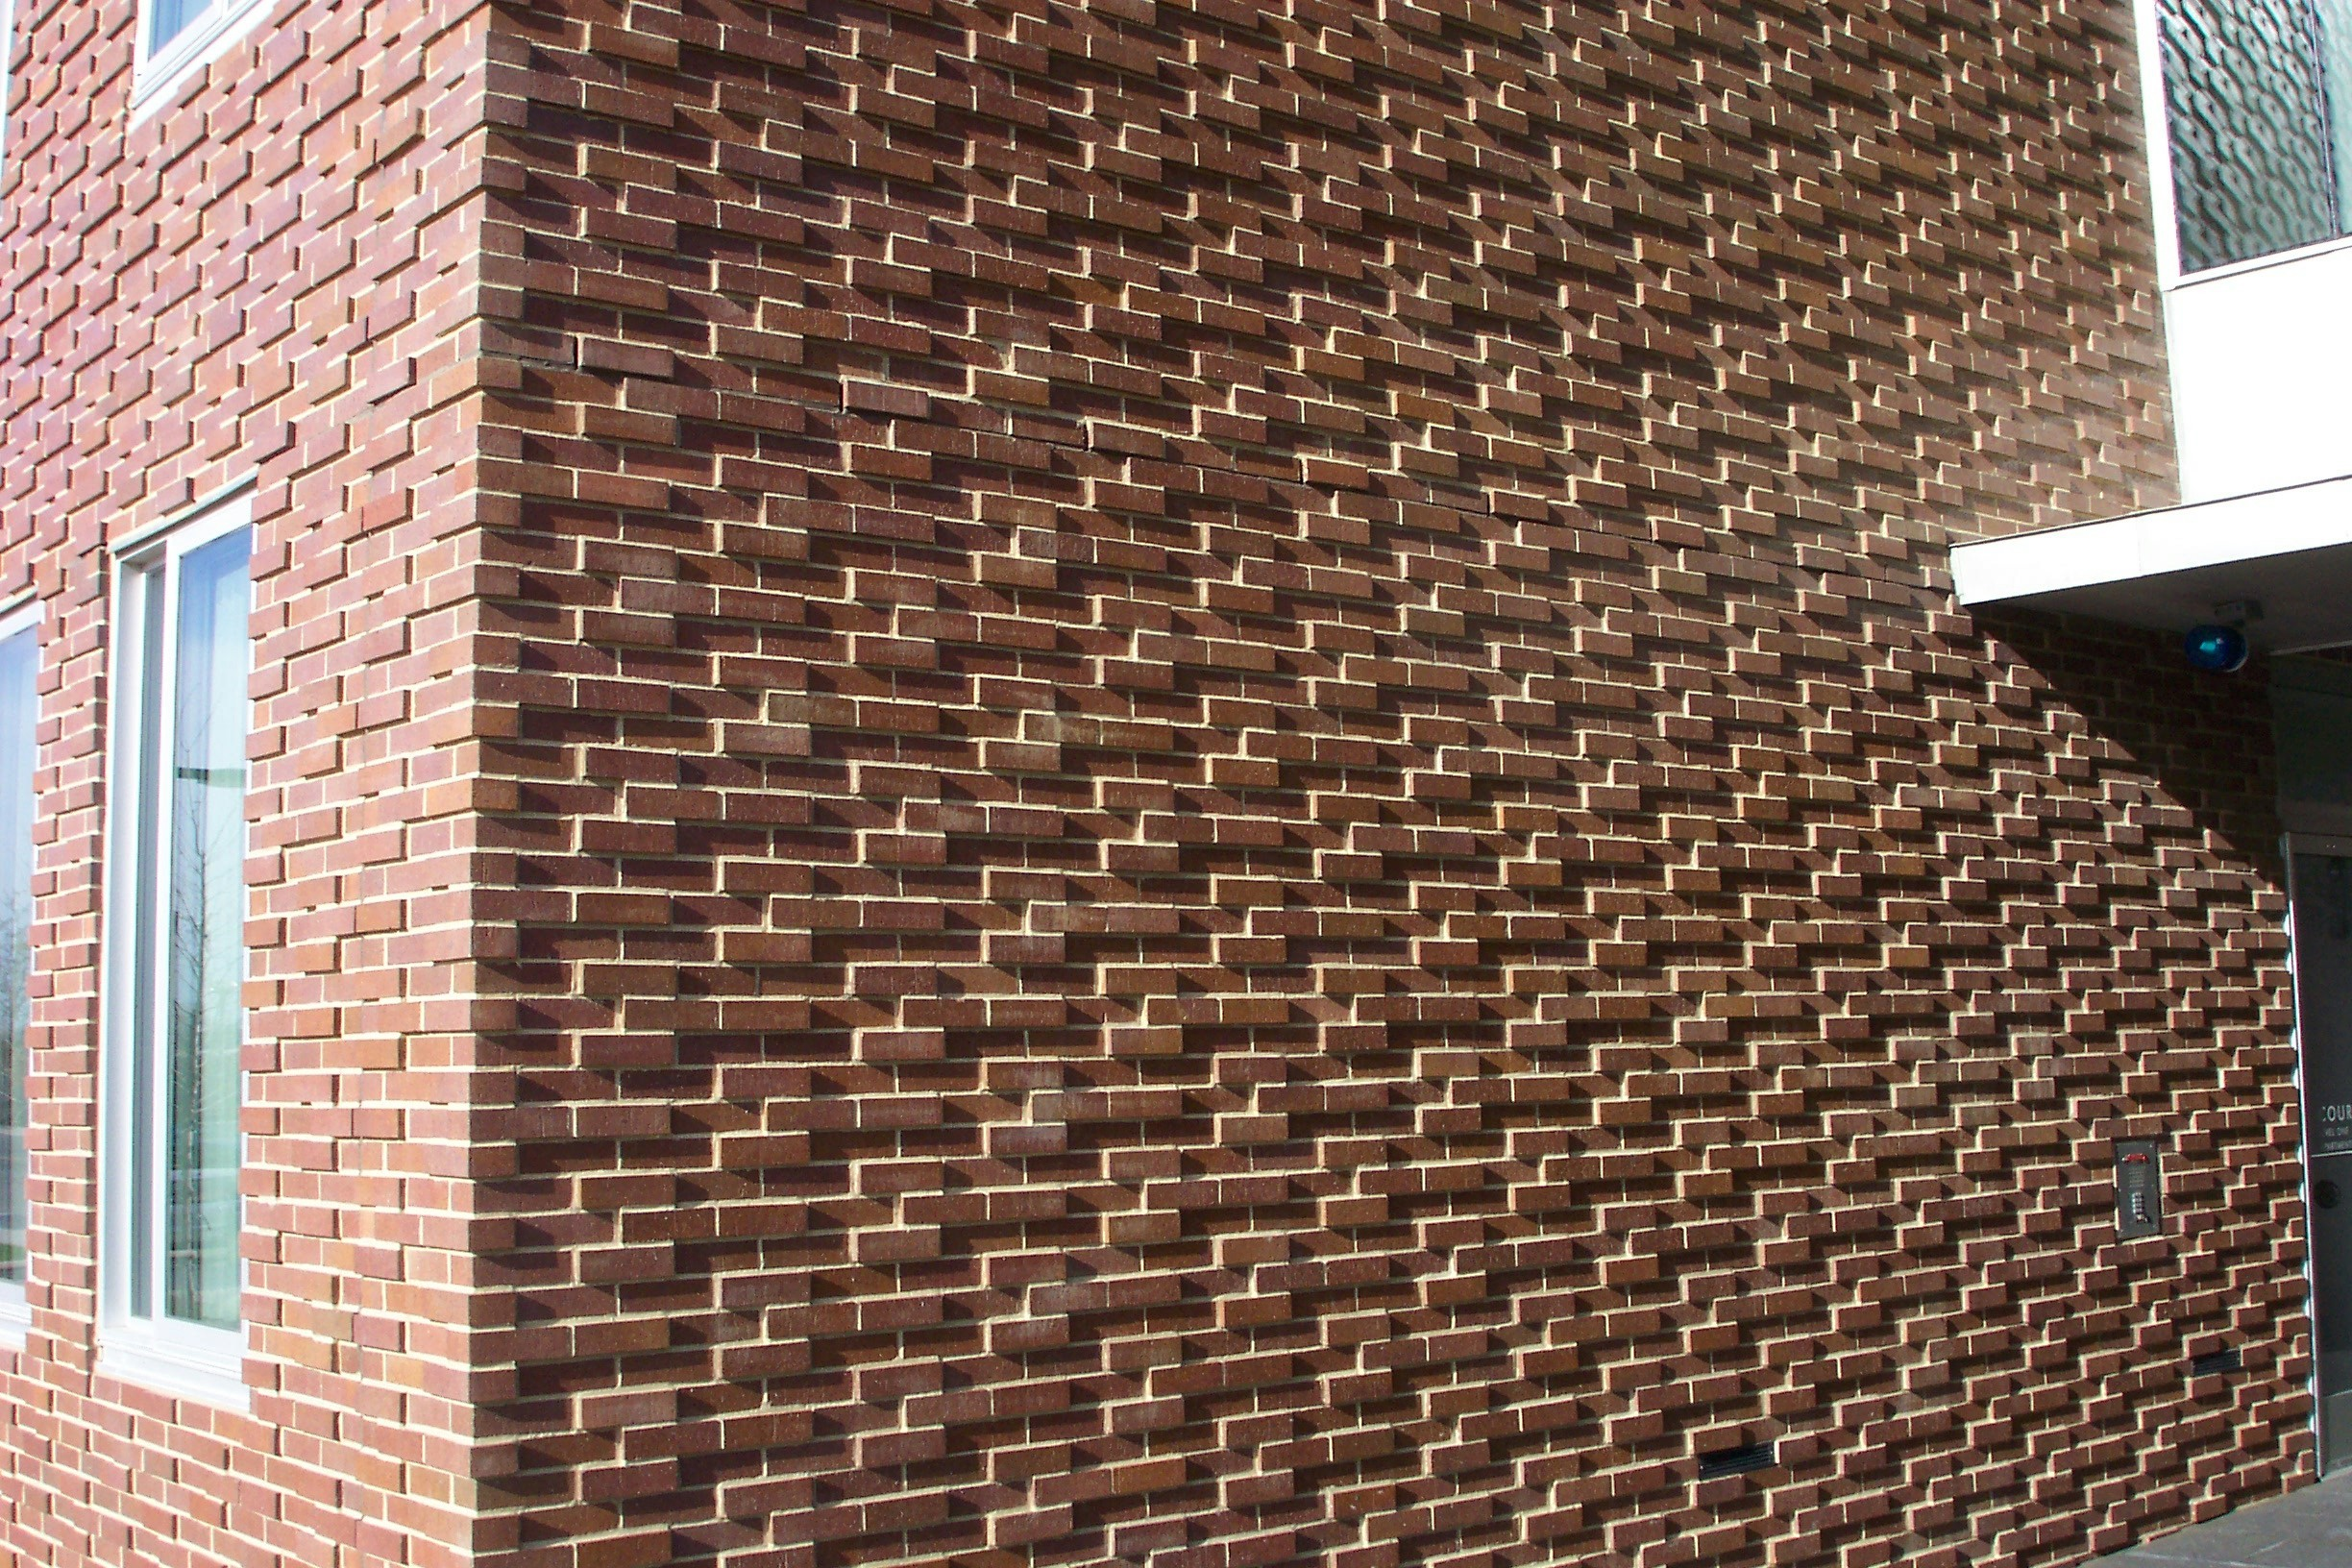 Brick Corbelling International Masonry Institute